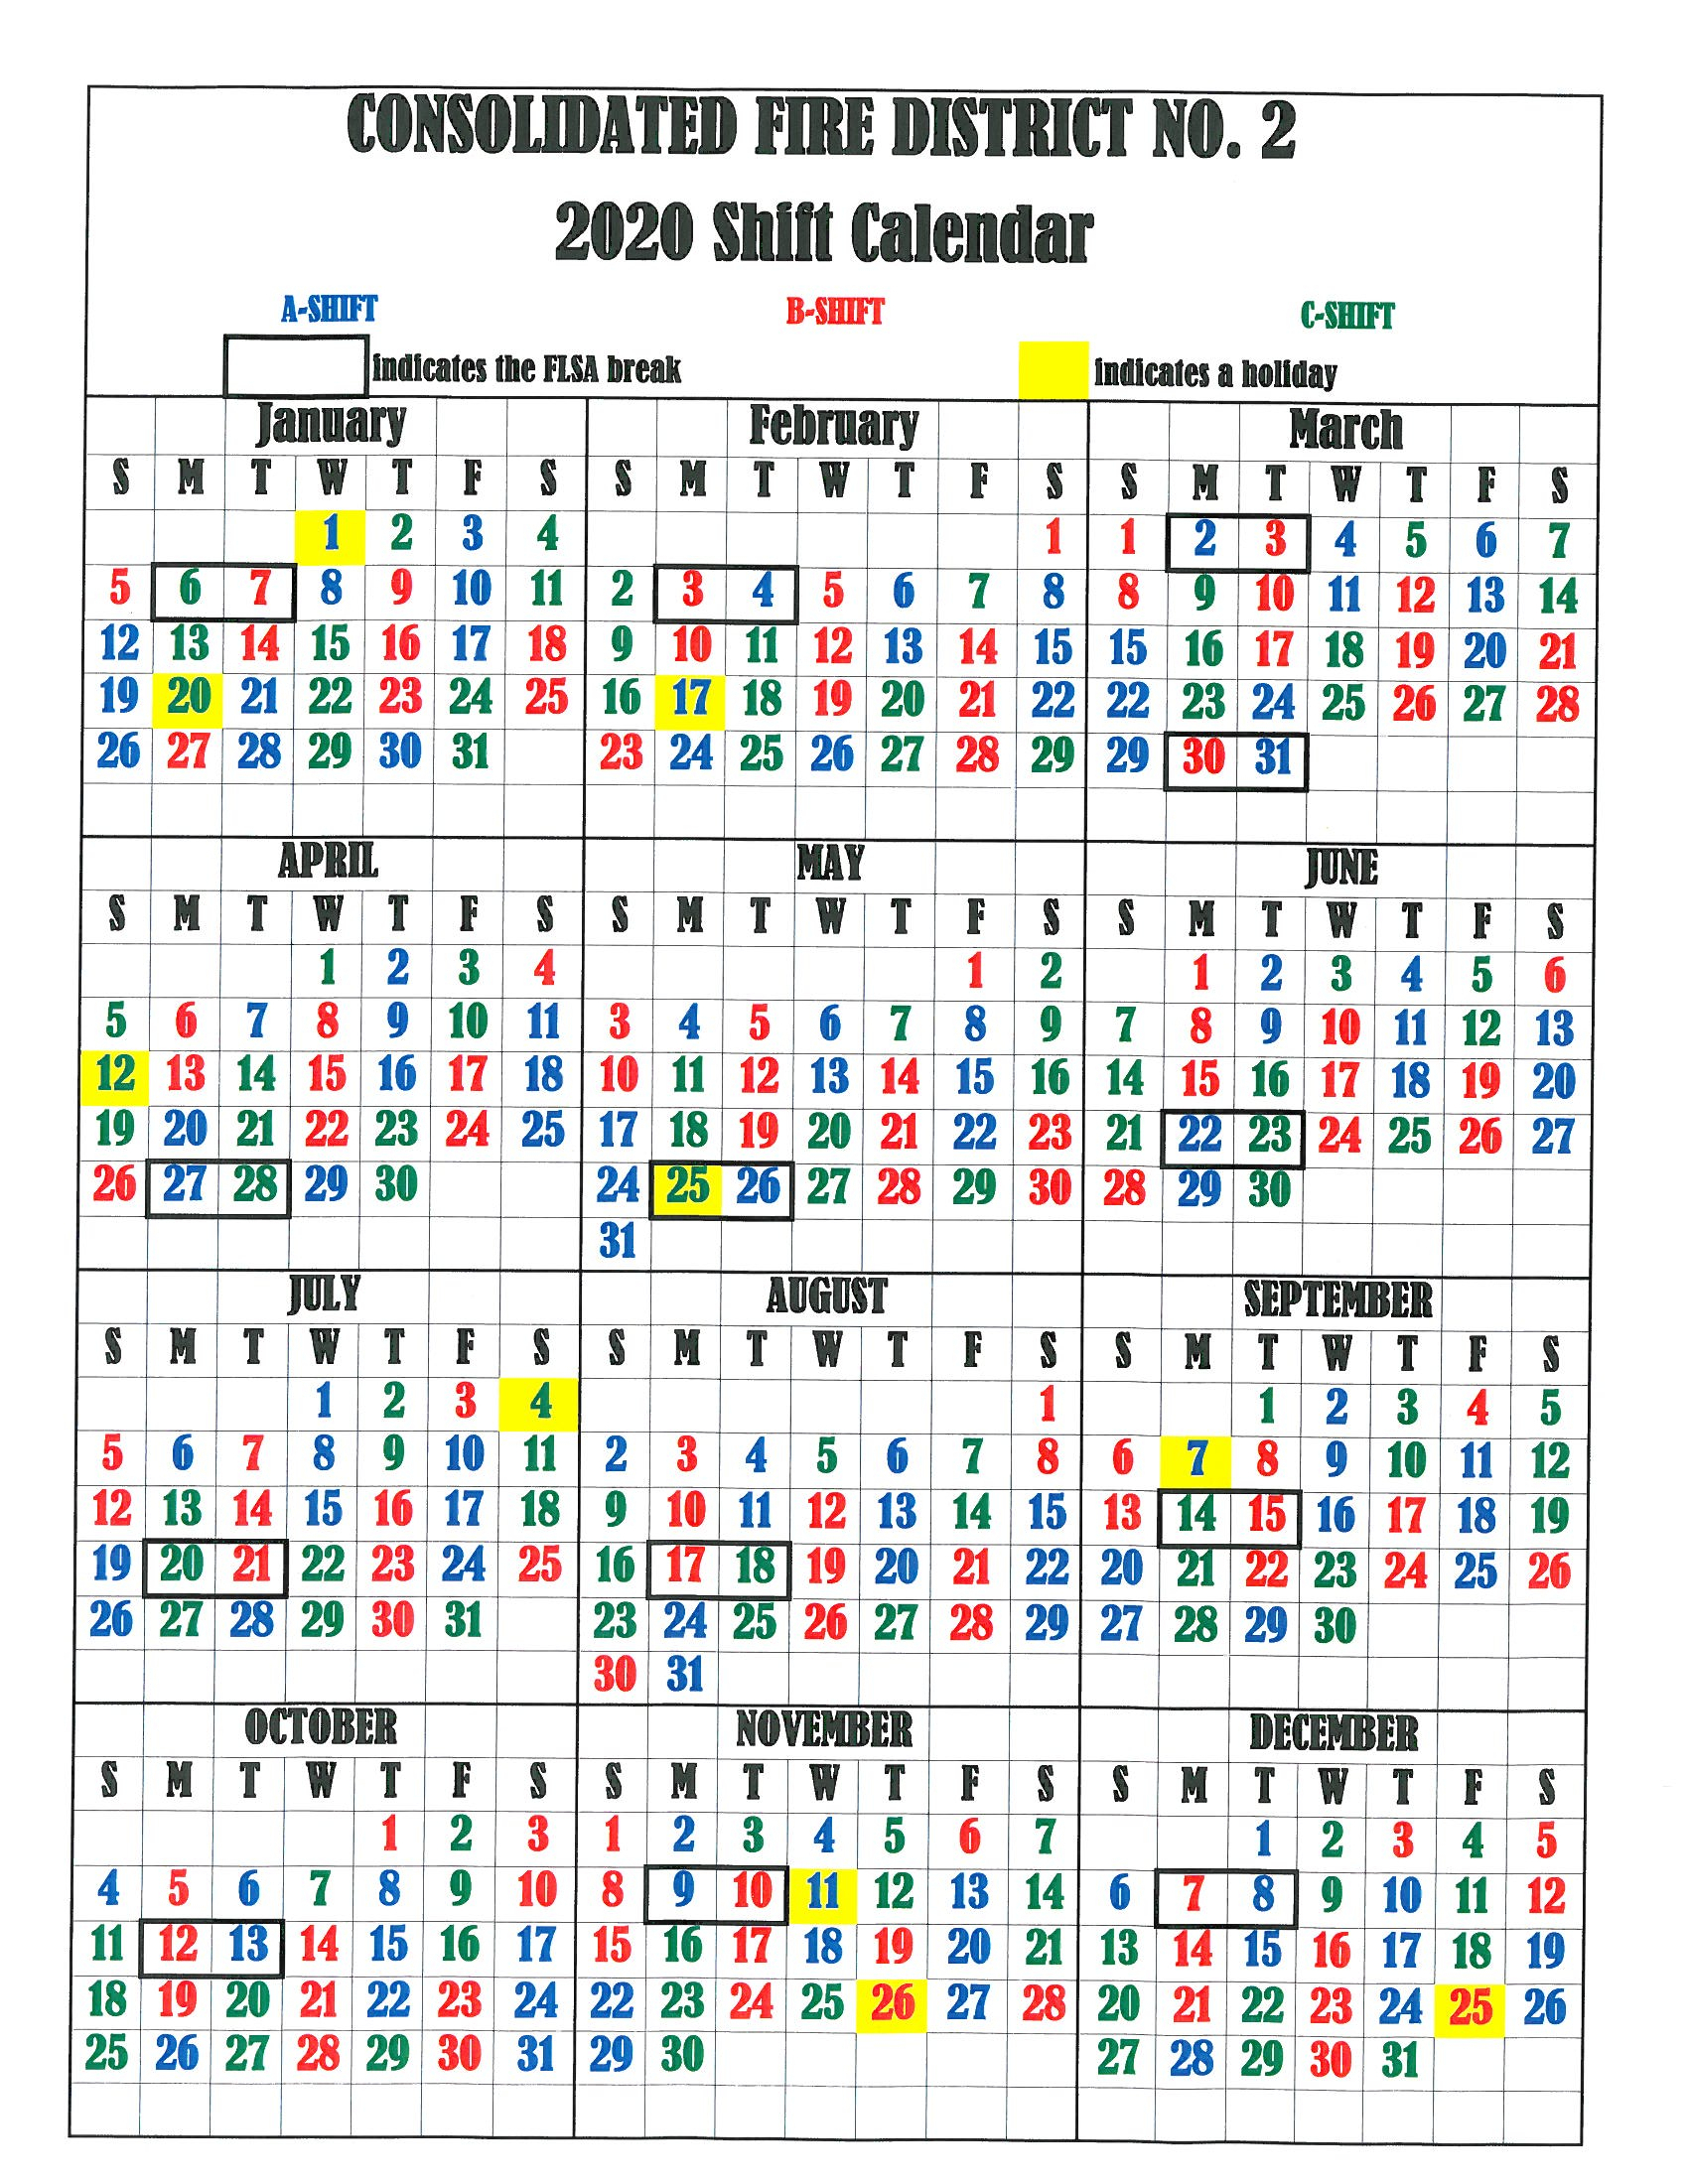 Shift Calendar 2020 - Wpa.wpart.co regarding 2020 Shift Calendar Free